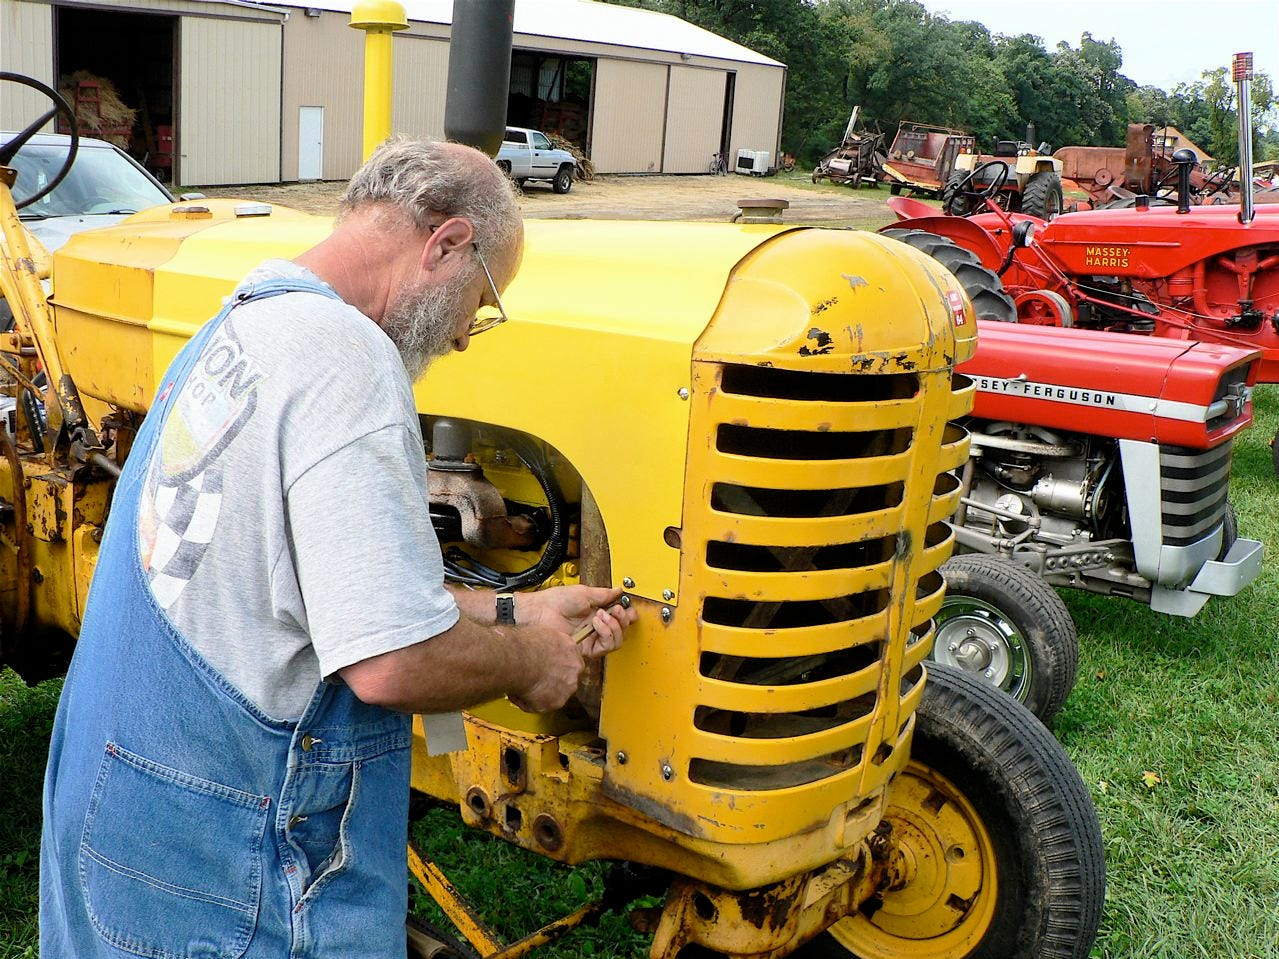 Dave Willie of Necedah tightens a bolt on a shield on his rare yellow Massey industrial tractor.